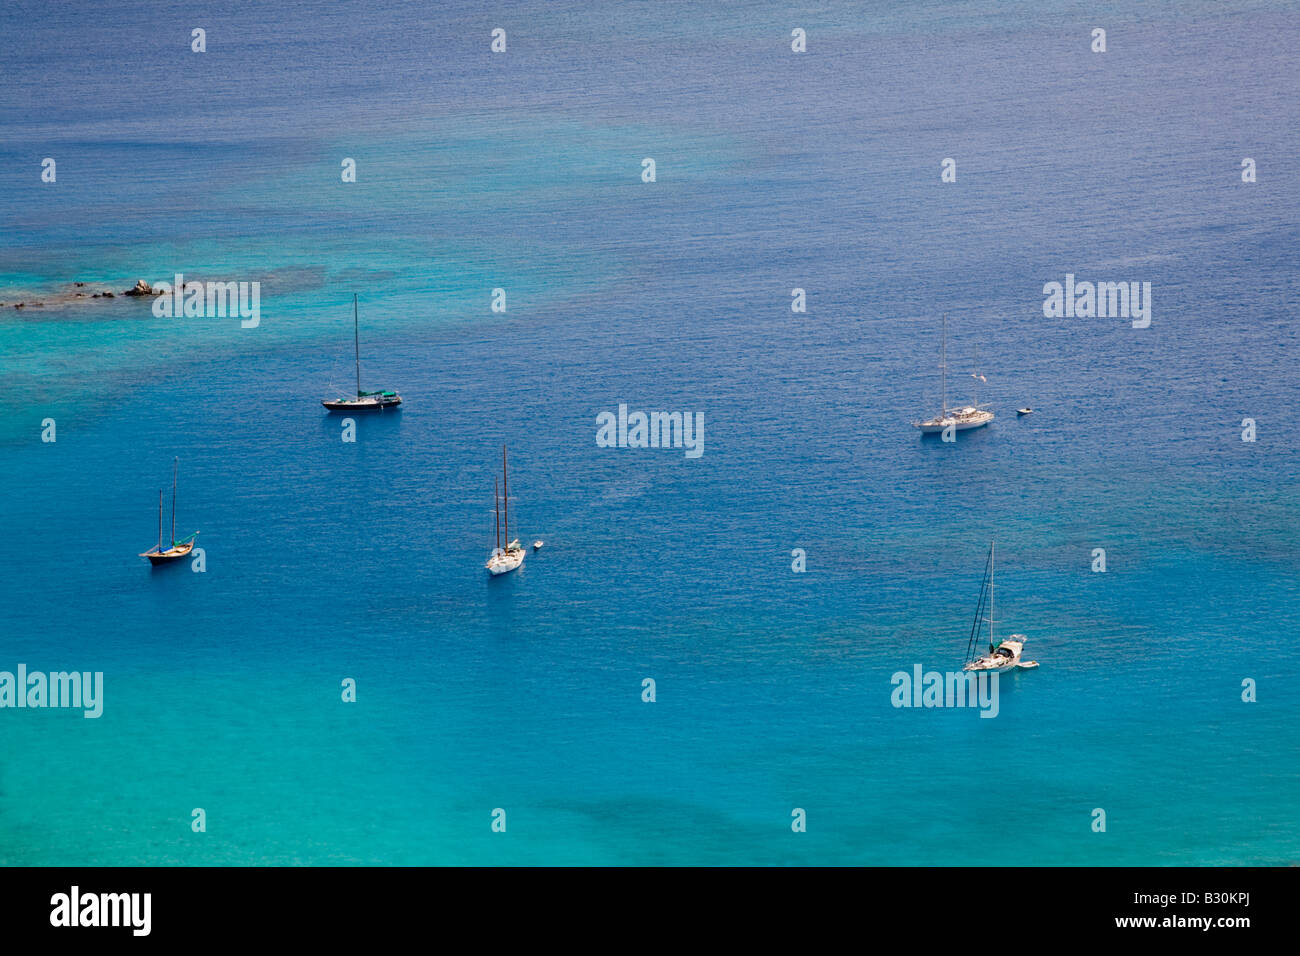 Sailboats anchored in Coral Bay on the caribbean island of St John in the US Virgin Islands - Stock Image